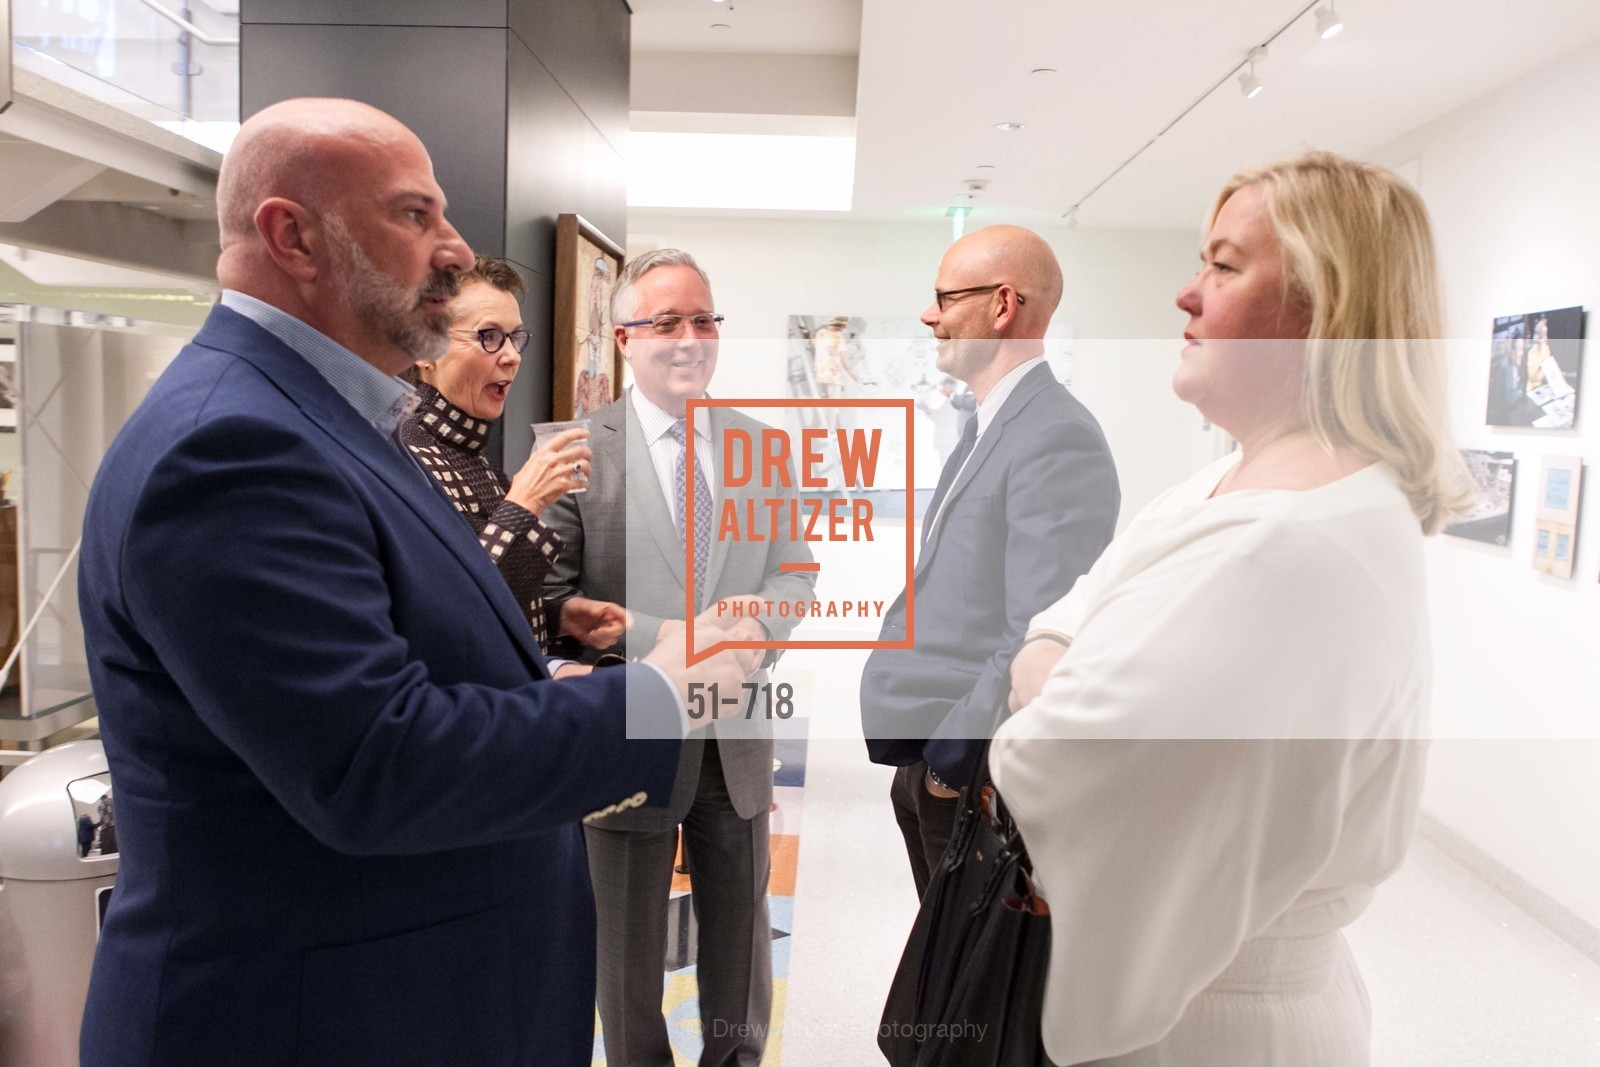 Geoffrey DeSousa, Heidi Gerpheide, ICAA Hosts NICKY HASLAM'S Lecture and Book Signing, US, May 11th, 2015,Drew Altizer, Drew Altizer Photography, full-service agency, private events, San Francisco photographer, photographer california